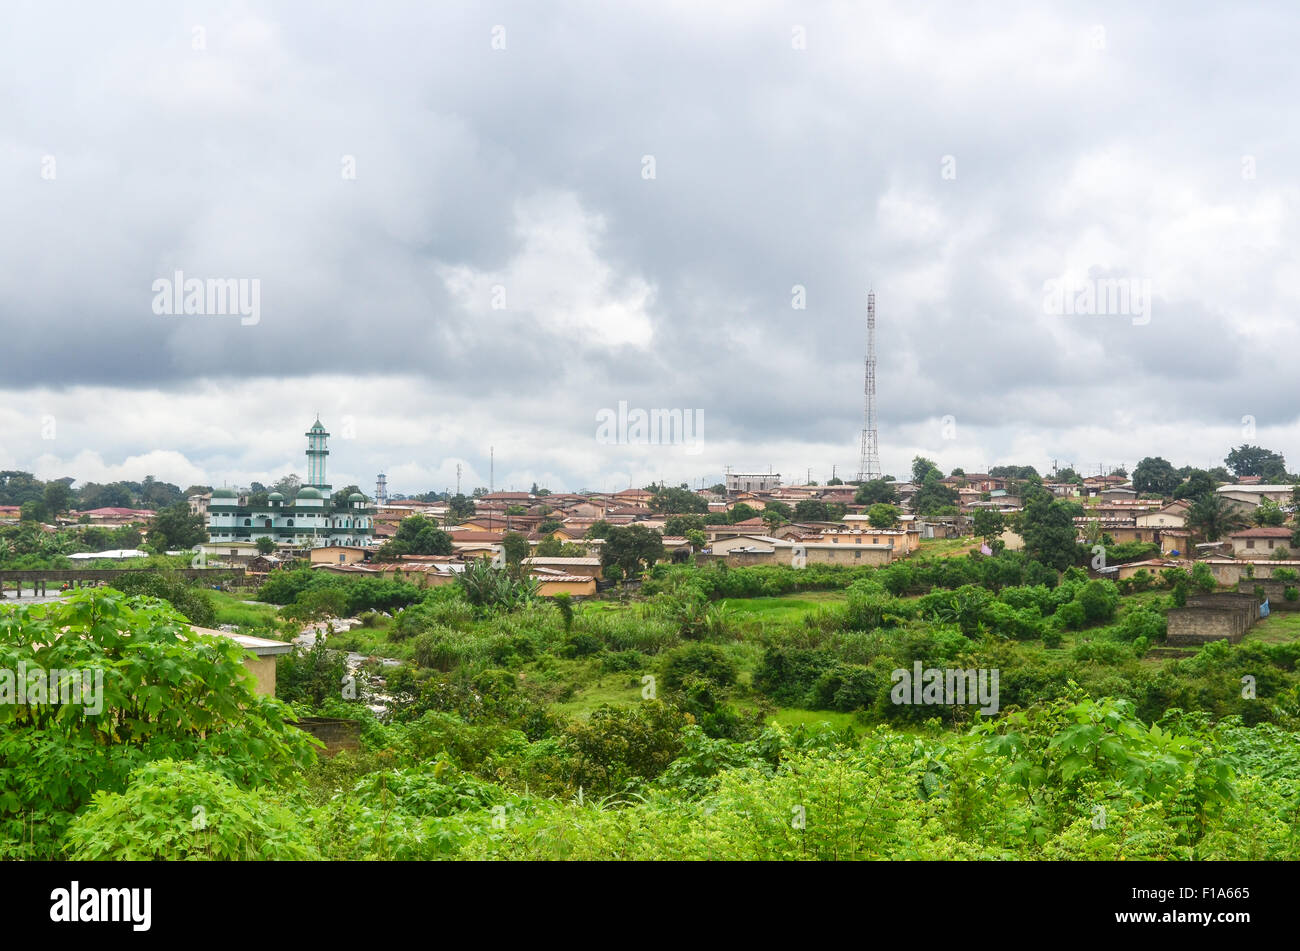 Town of Danane, Ivory Coast - Stock Image